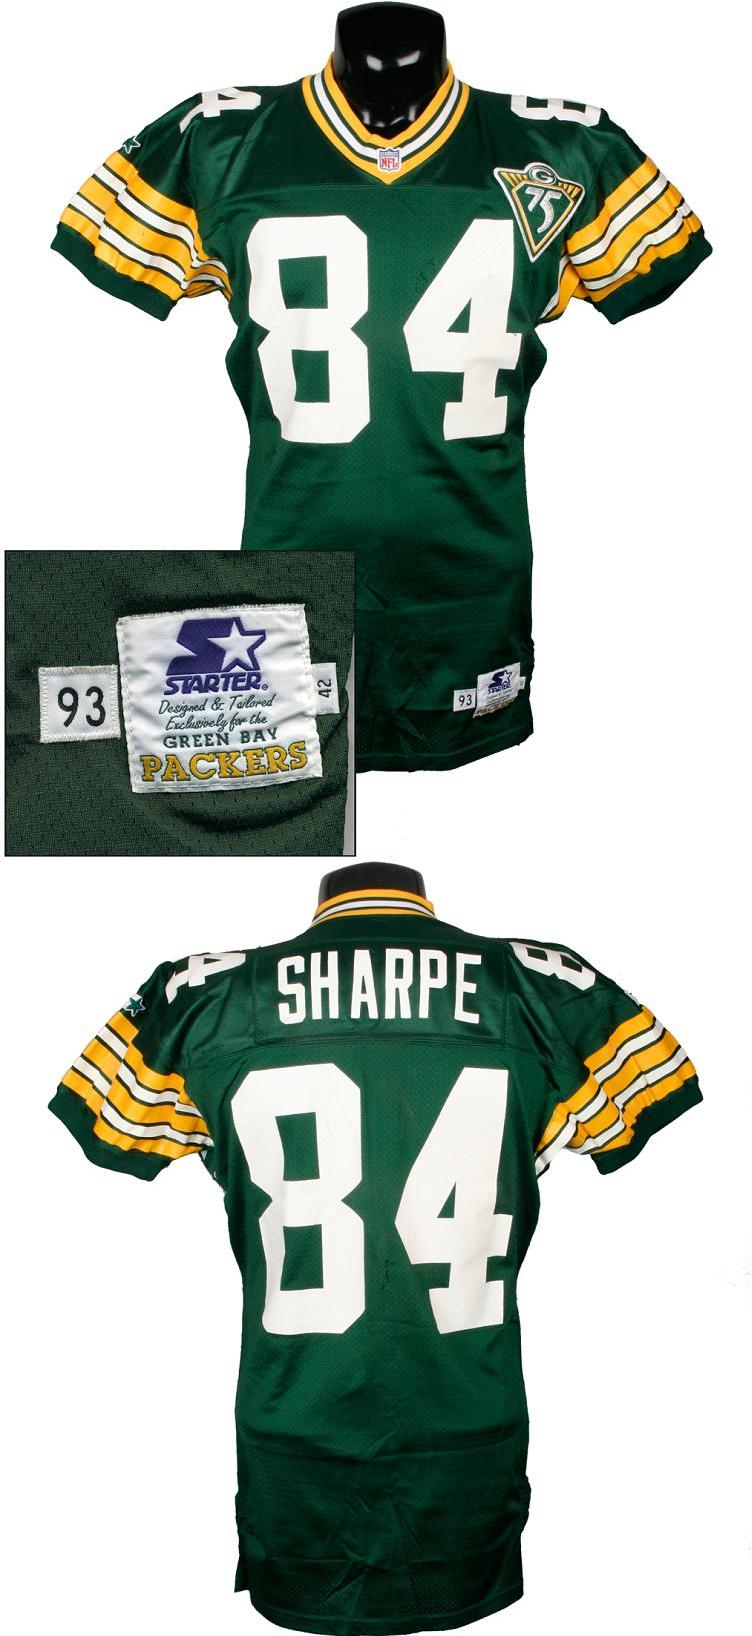 best service 089bd c915b 1993 Sterling Sharpe Game-Worn Packers Jersey (from Record-Breaking Season  w/75th Anniversary Patch)